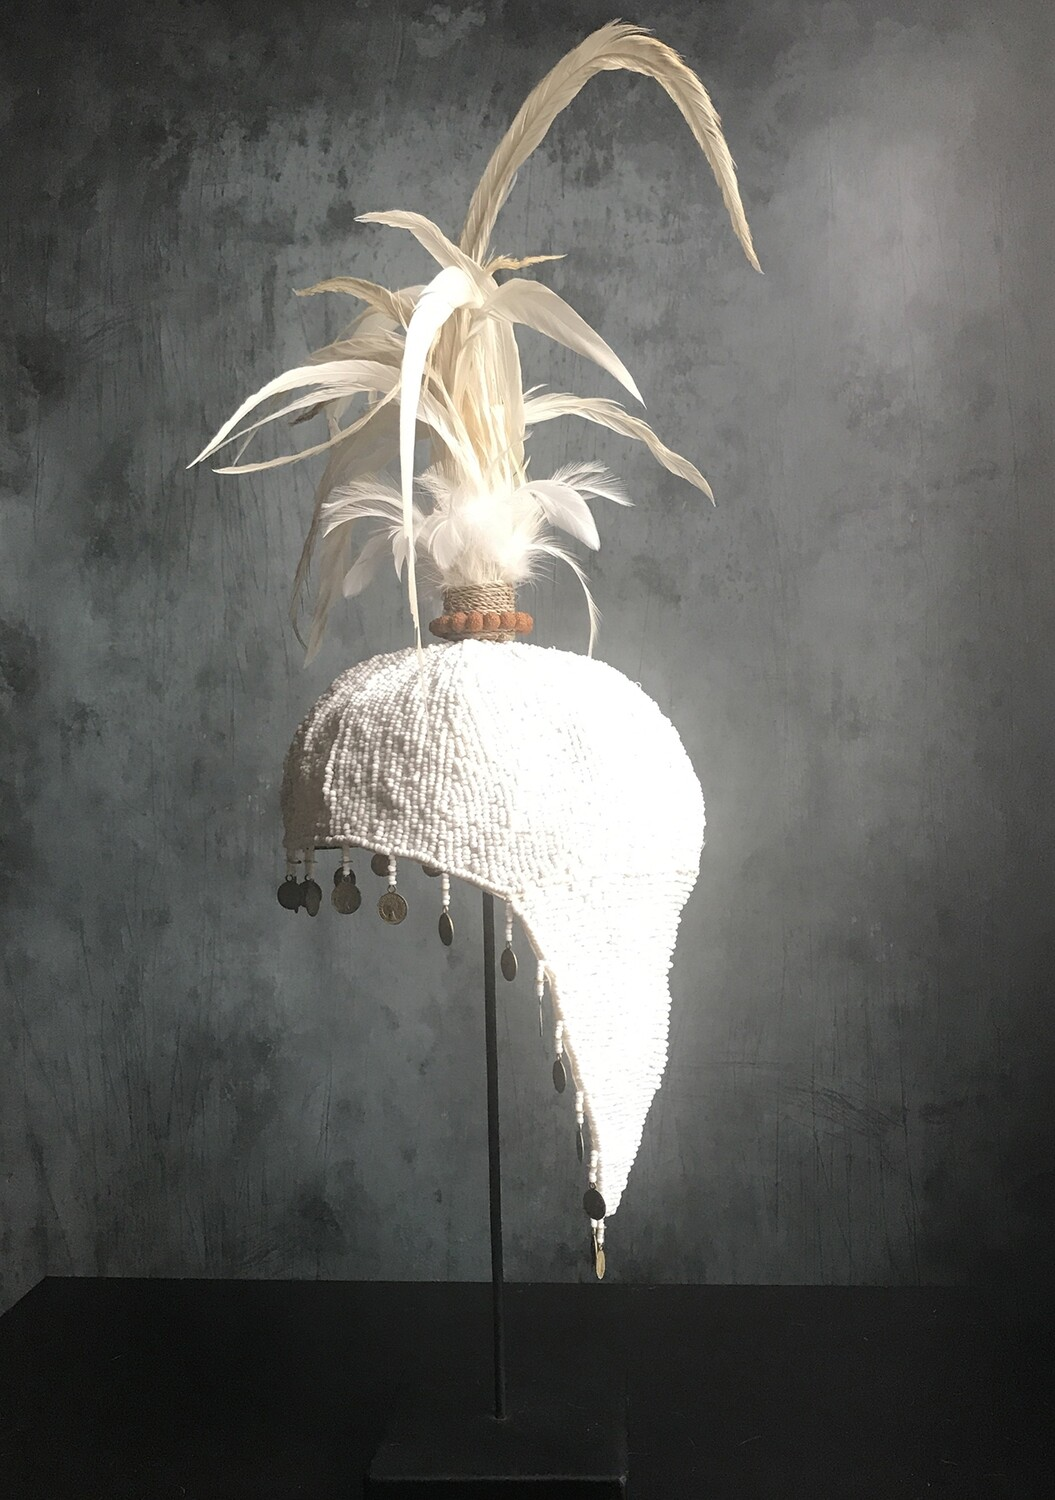 White Beaded Hat with White Feathers from Bali, Indonesia - Preorder